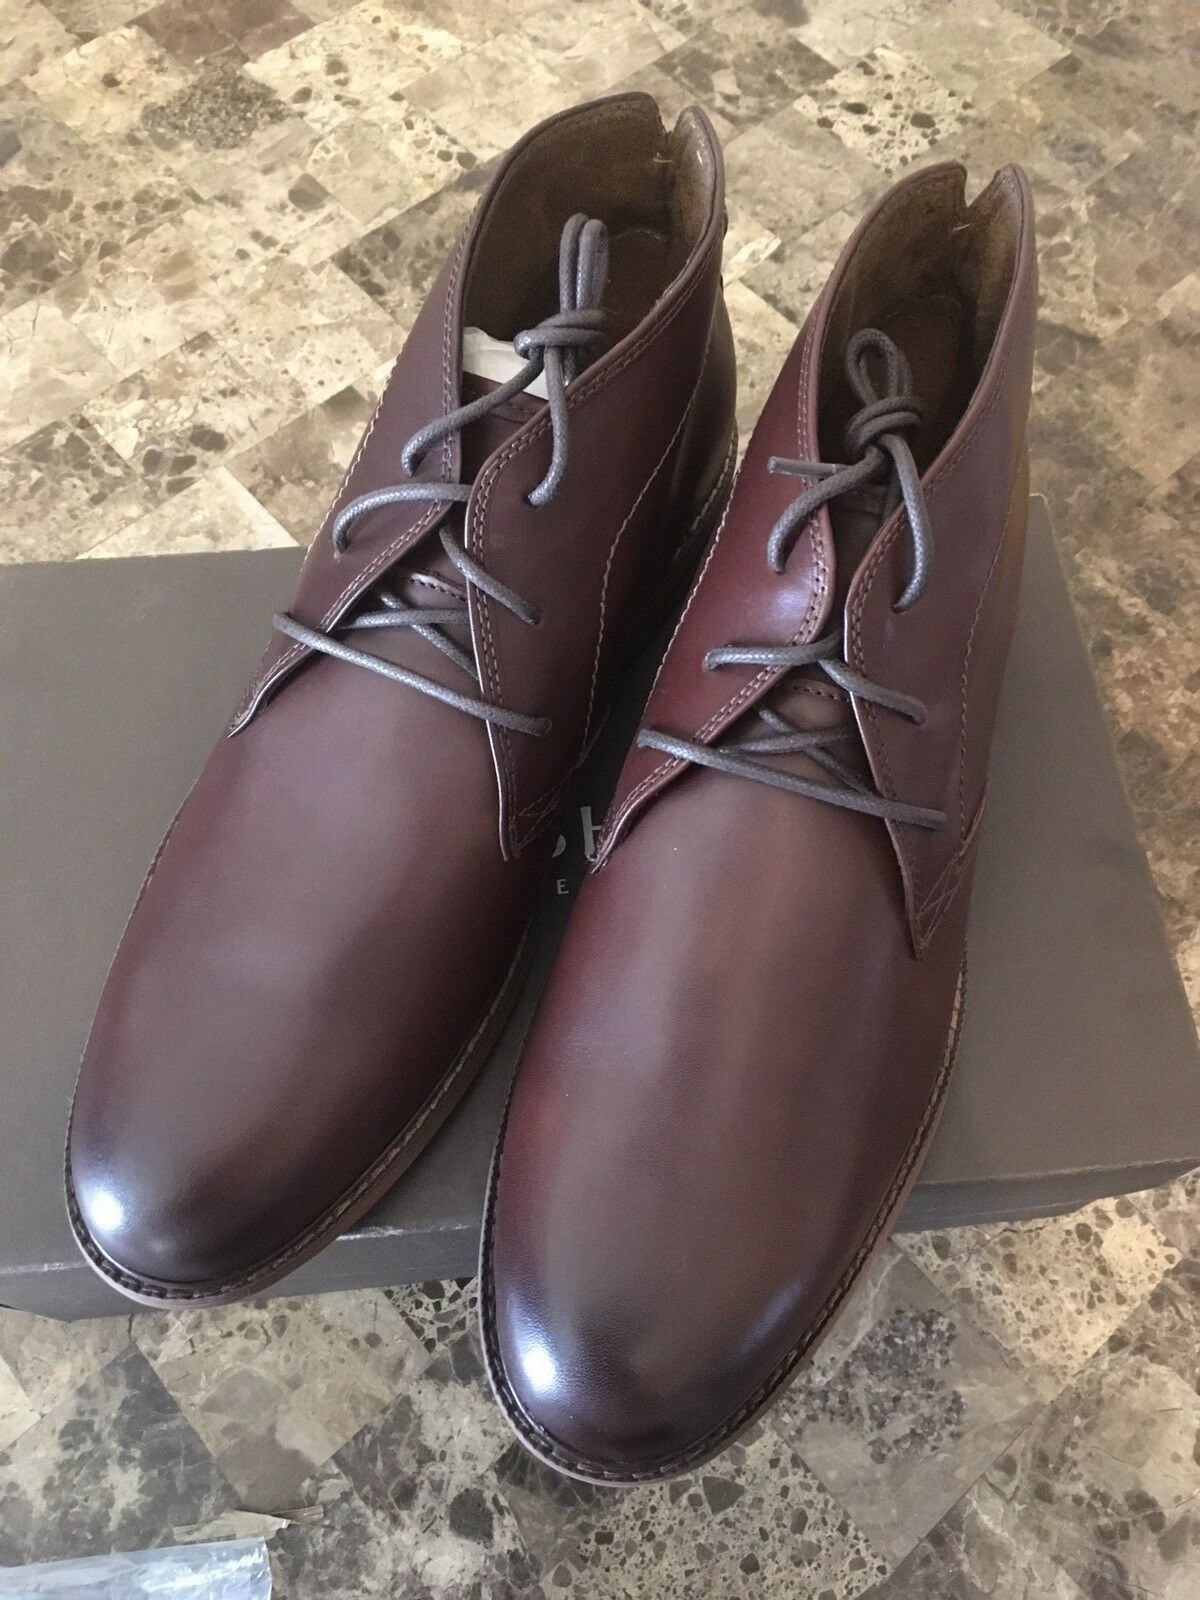 Florsheim Men's Doon Chukka Lace-Up Boot Leather Brown Men's Size 13 New In Box